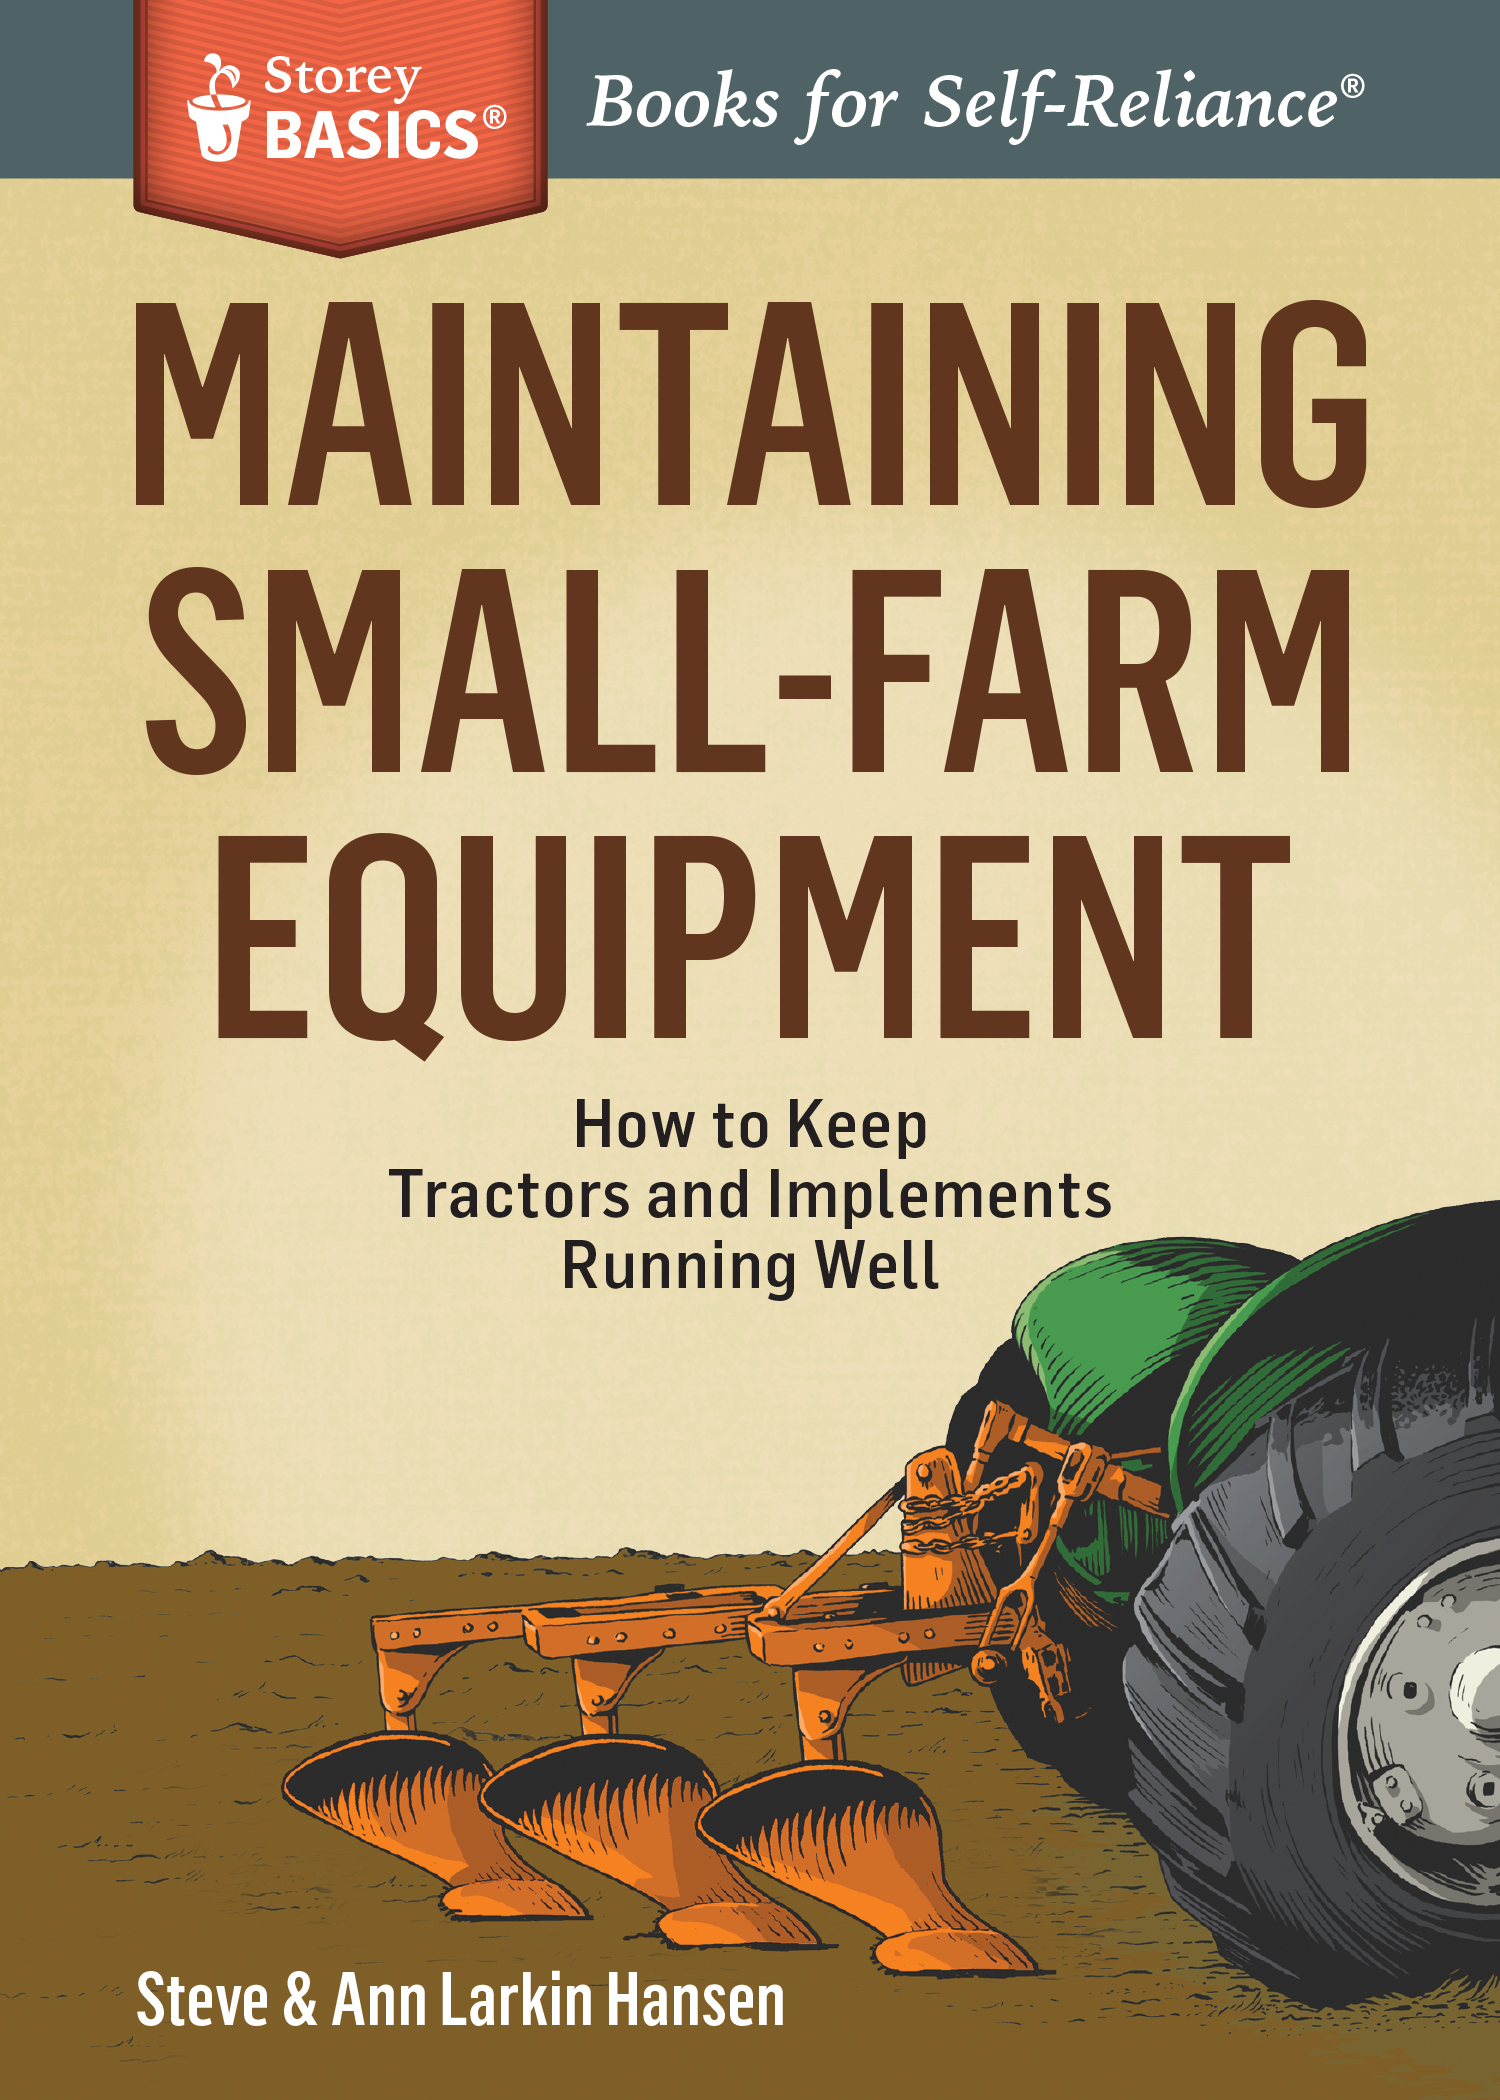 Maintaining Small-Farm Equipment How to Keep Tractors and Implements Running Well. A Storey BASICS® Title - Steve Hansen